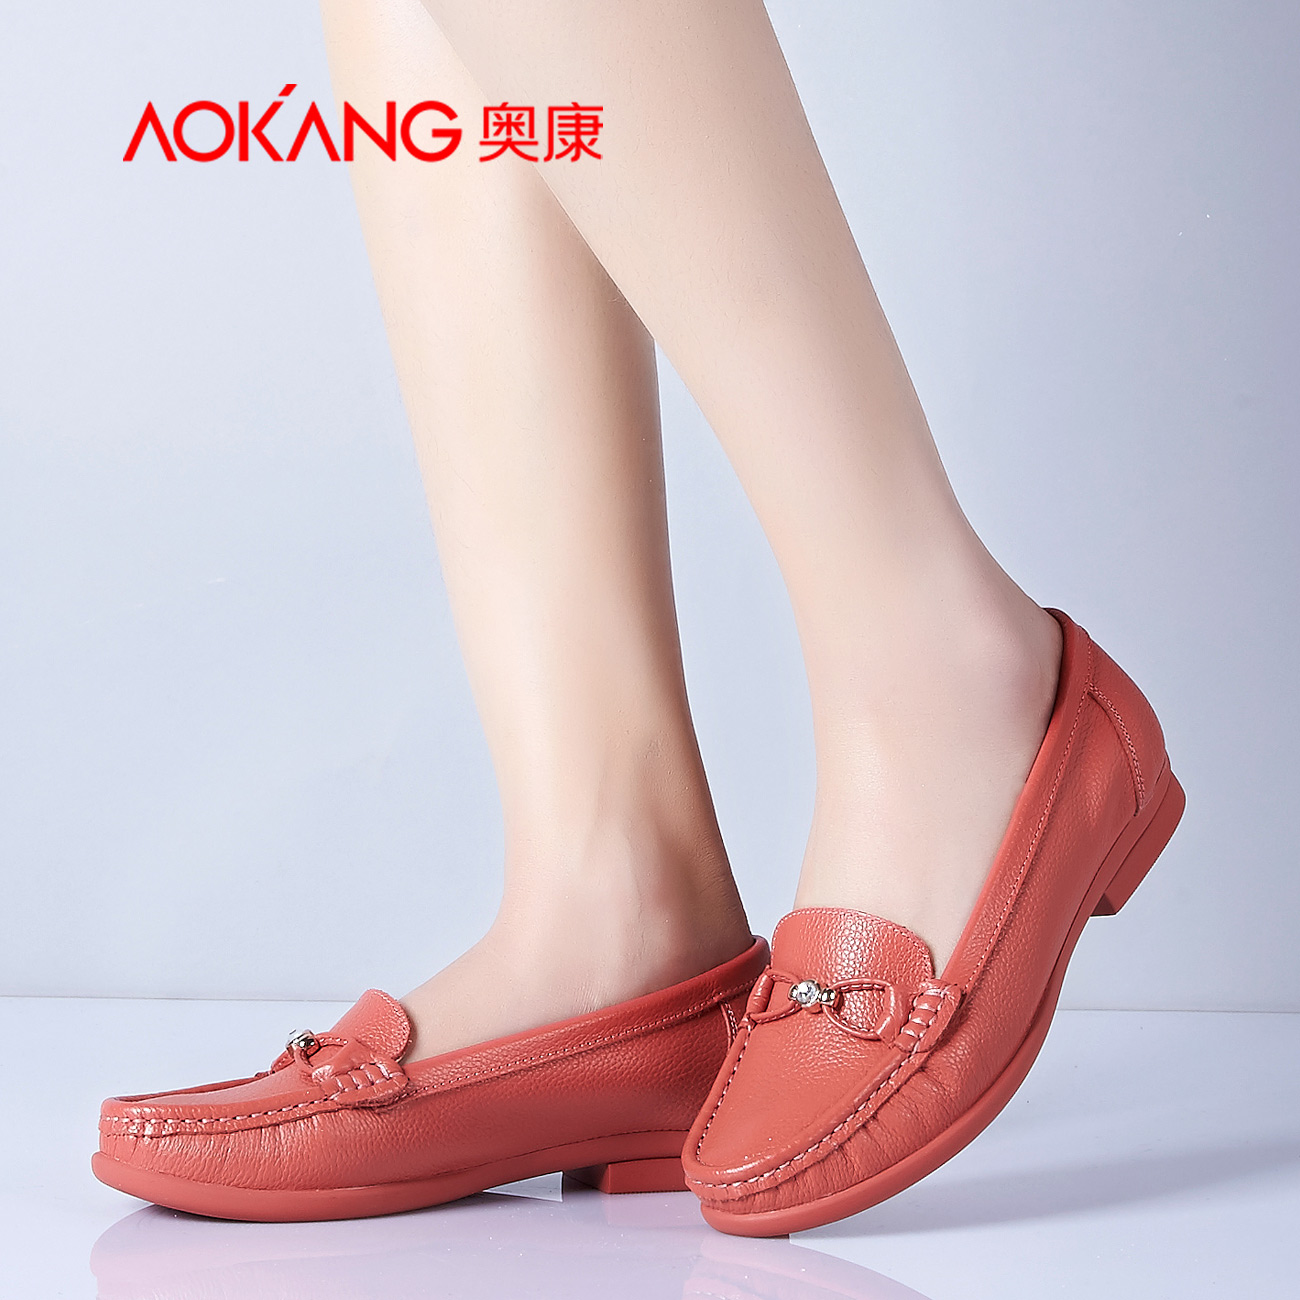 Aokang women's shoes new shallow mouth fashion rhinestone comfortable low heel single shoes women's shoes authentic